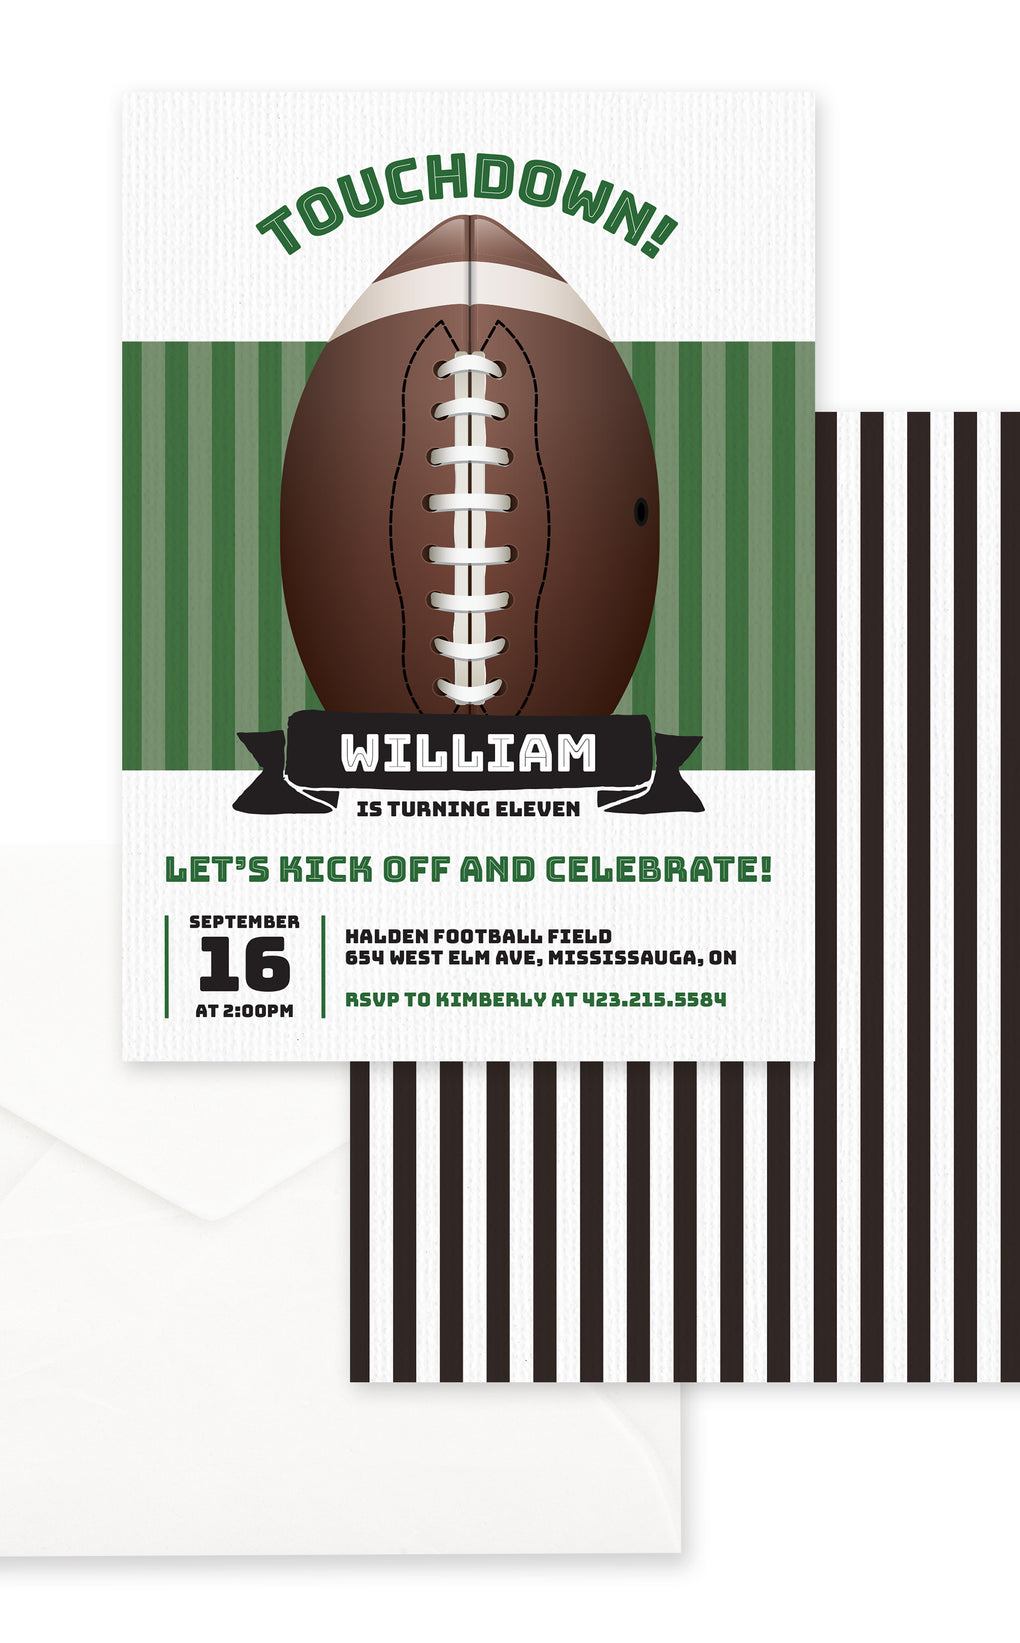 Touchdown Football Birthday Party Invitation